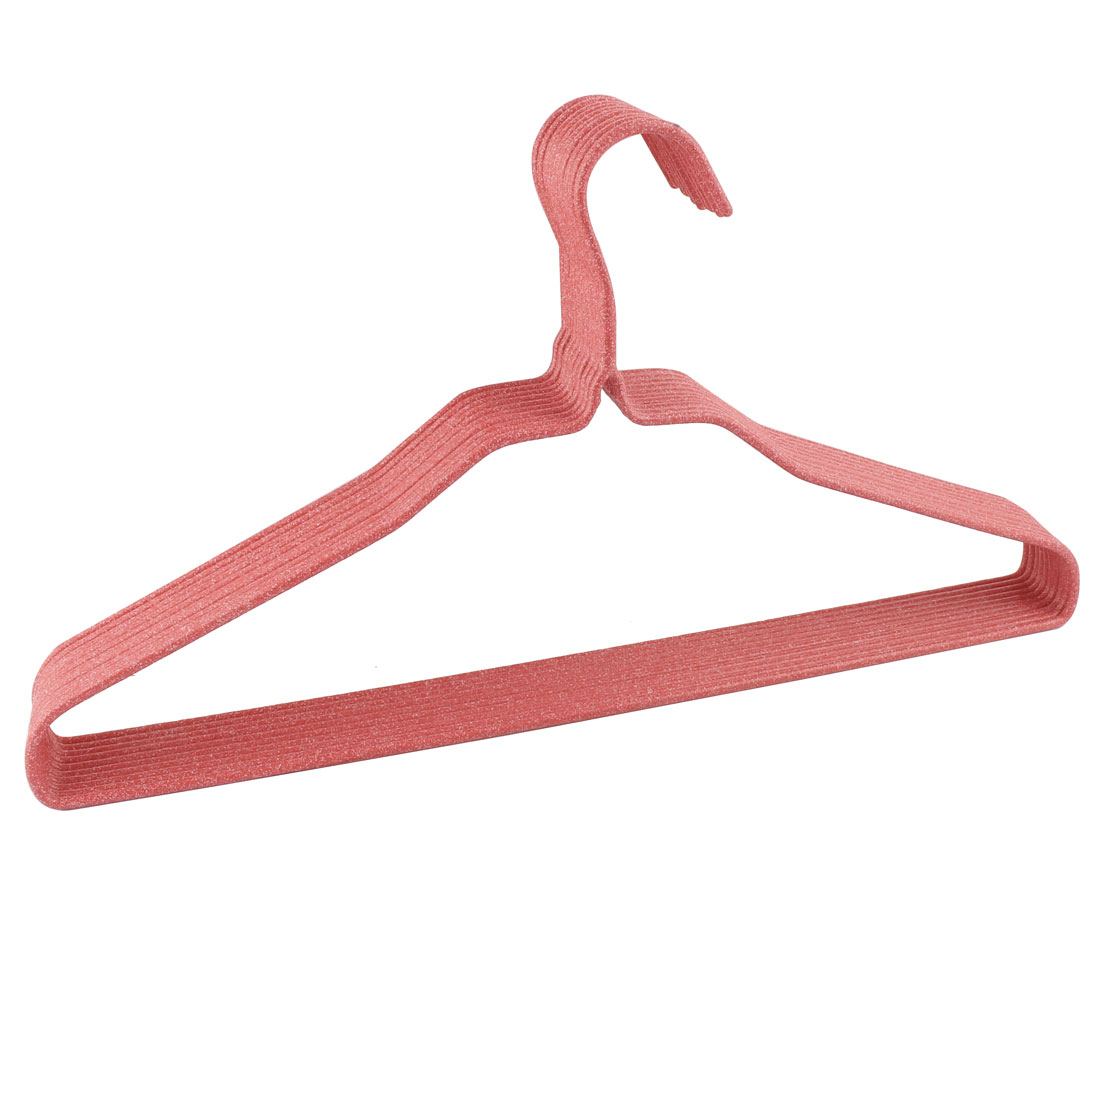 Household Jacket Coat Towel Skirts Pants Blouse Clothes Hanger Red 10 Pcs